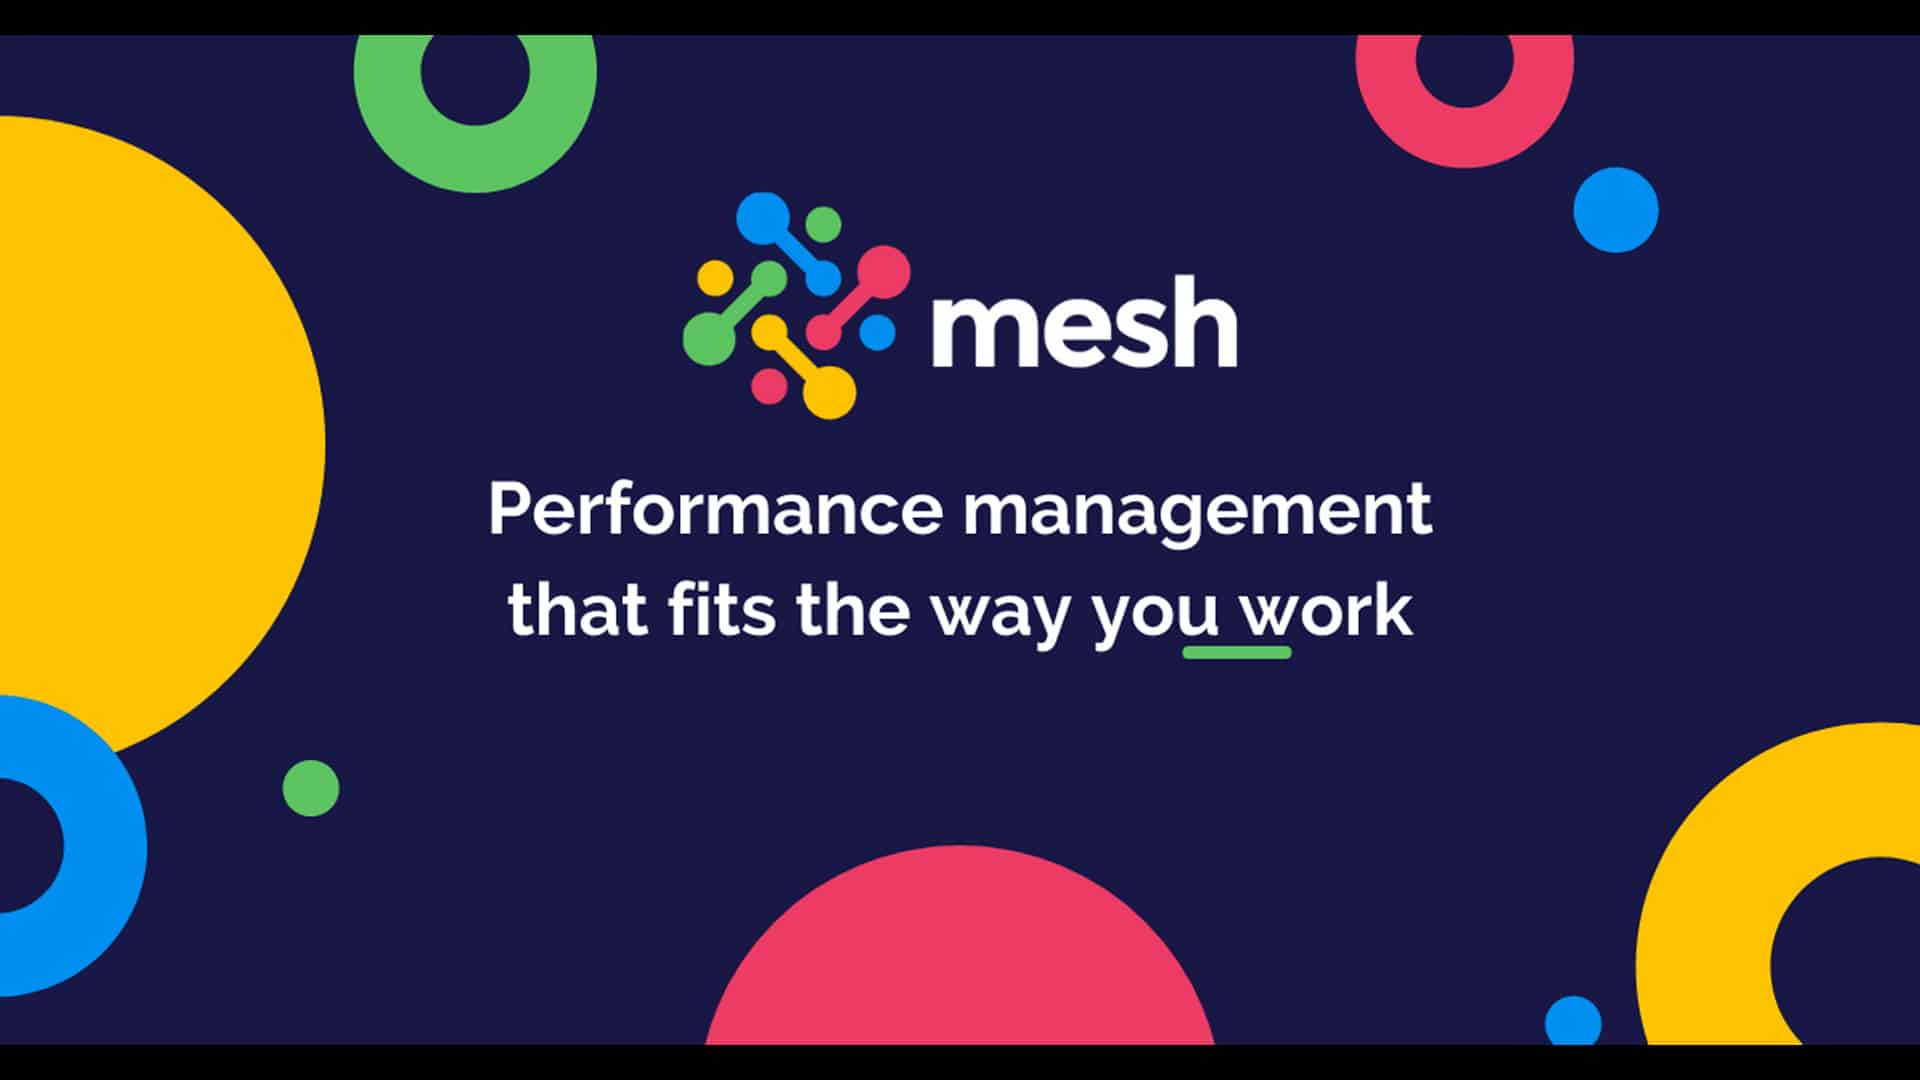 Mesh raises USD 5 mn in funding led by Sequoia Capital India's Surge